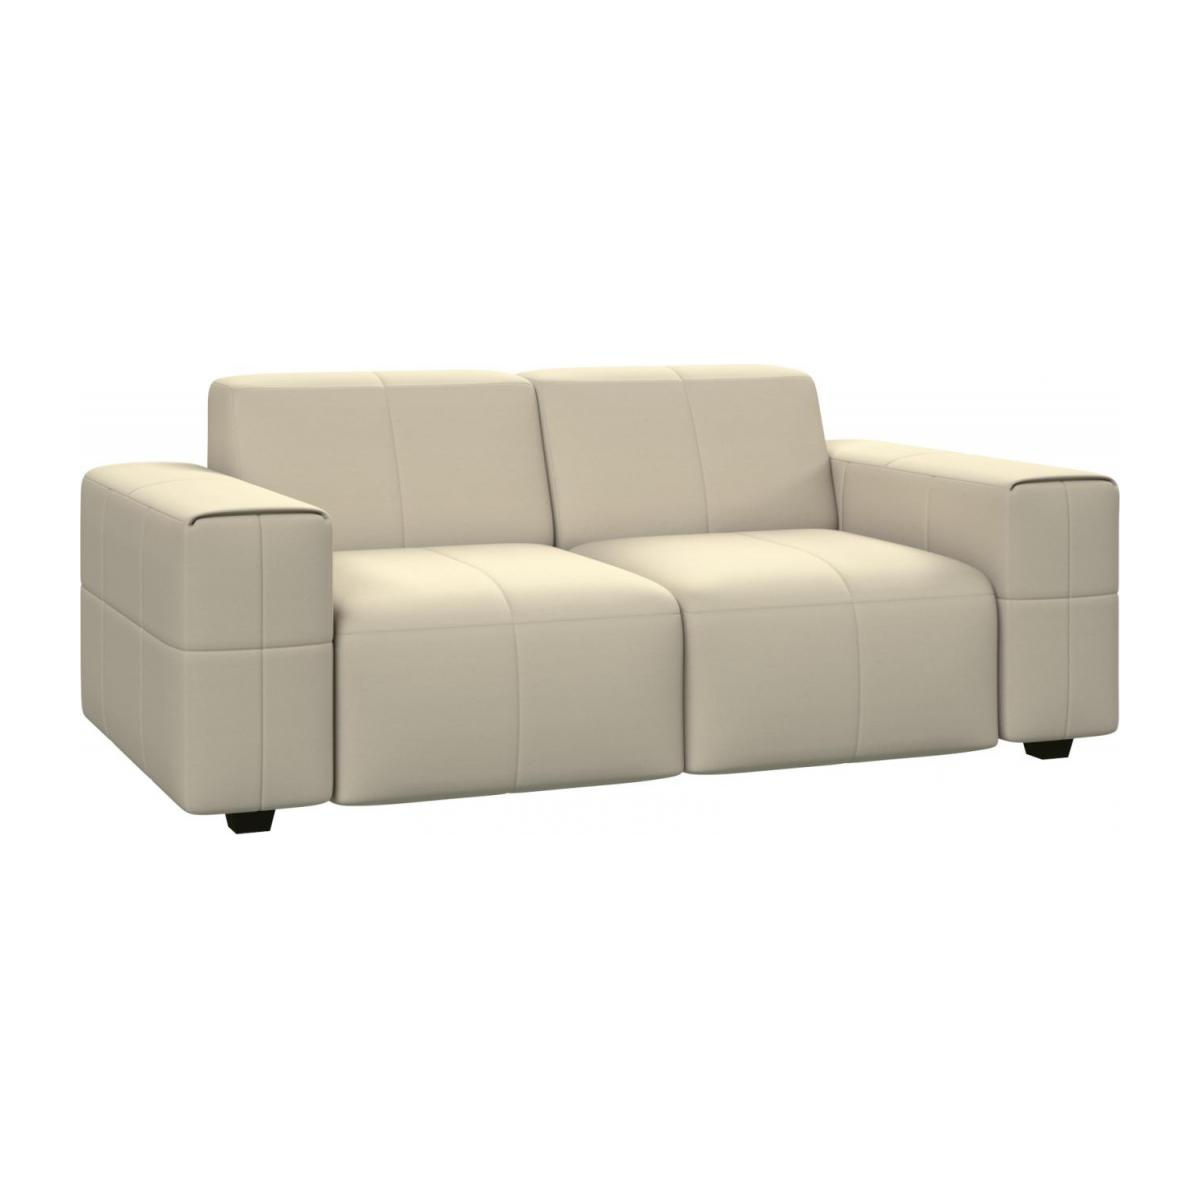 2 seater sofa in Eton veined leather, cream n°1